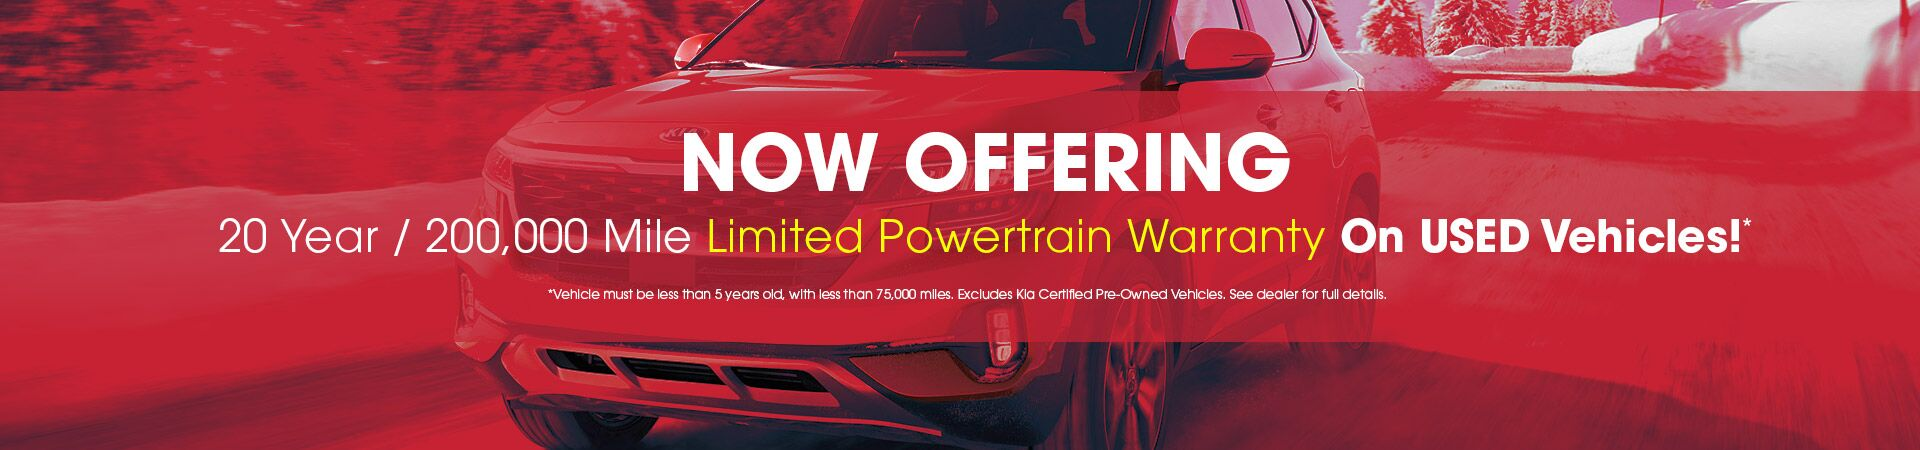 Limited Powertrain Warranty